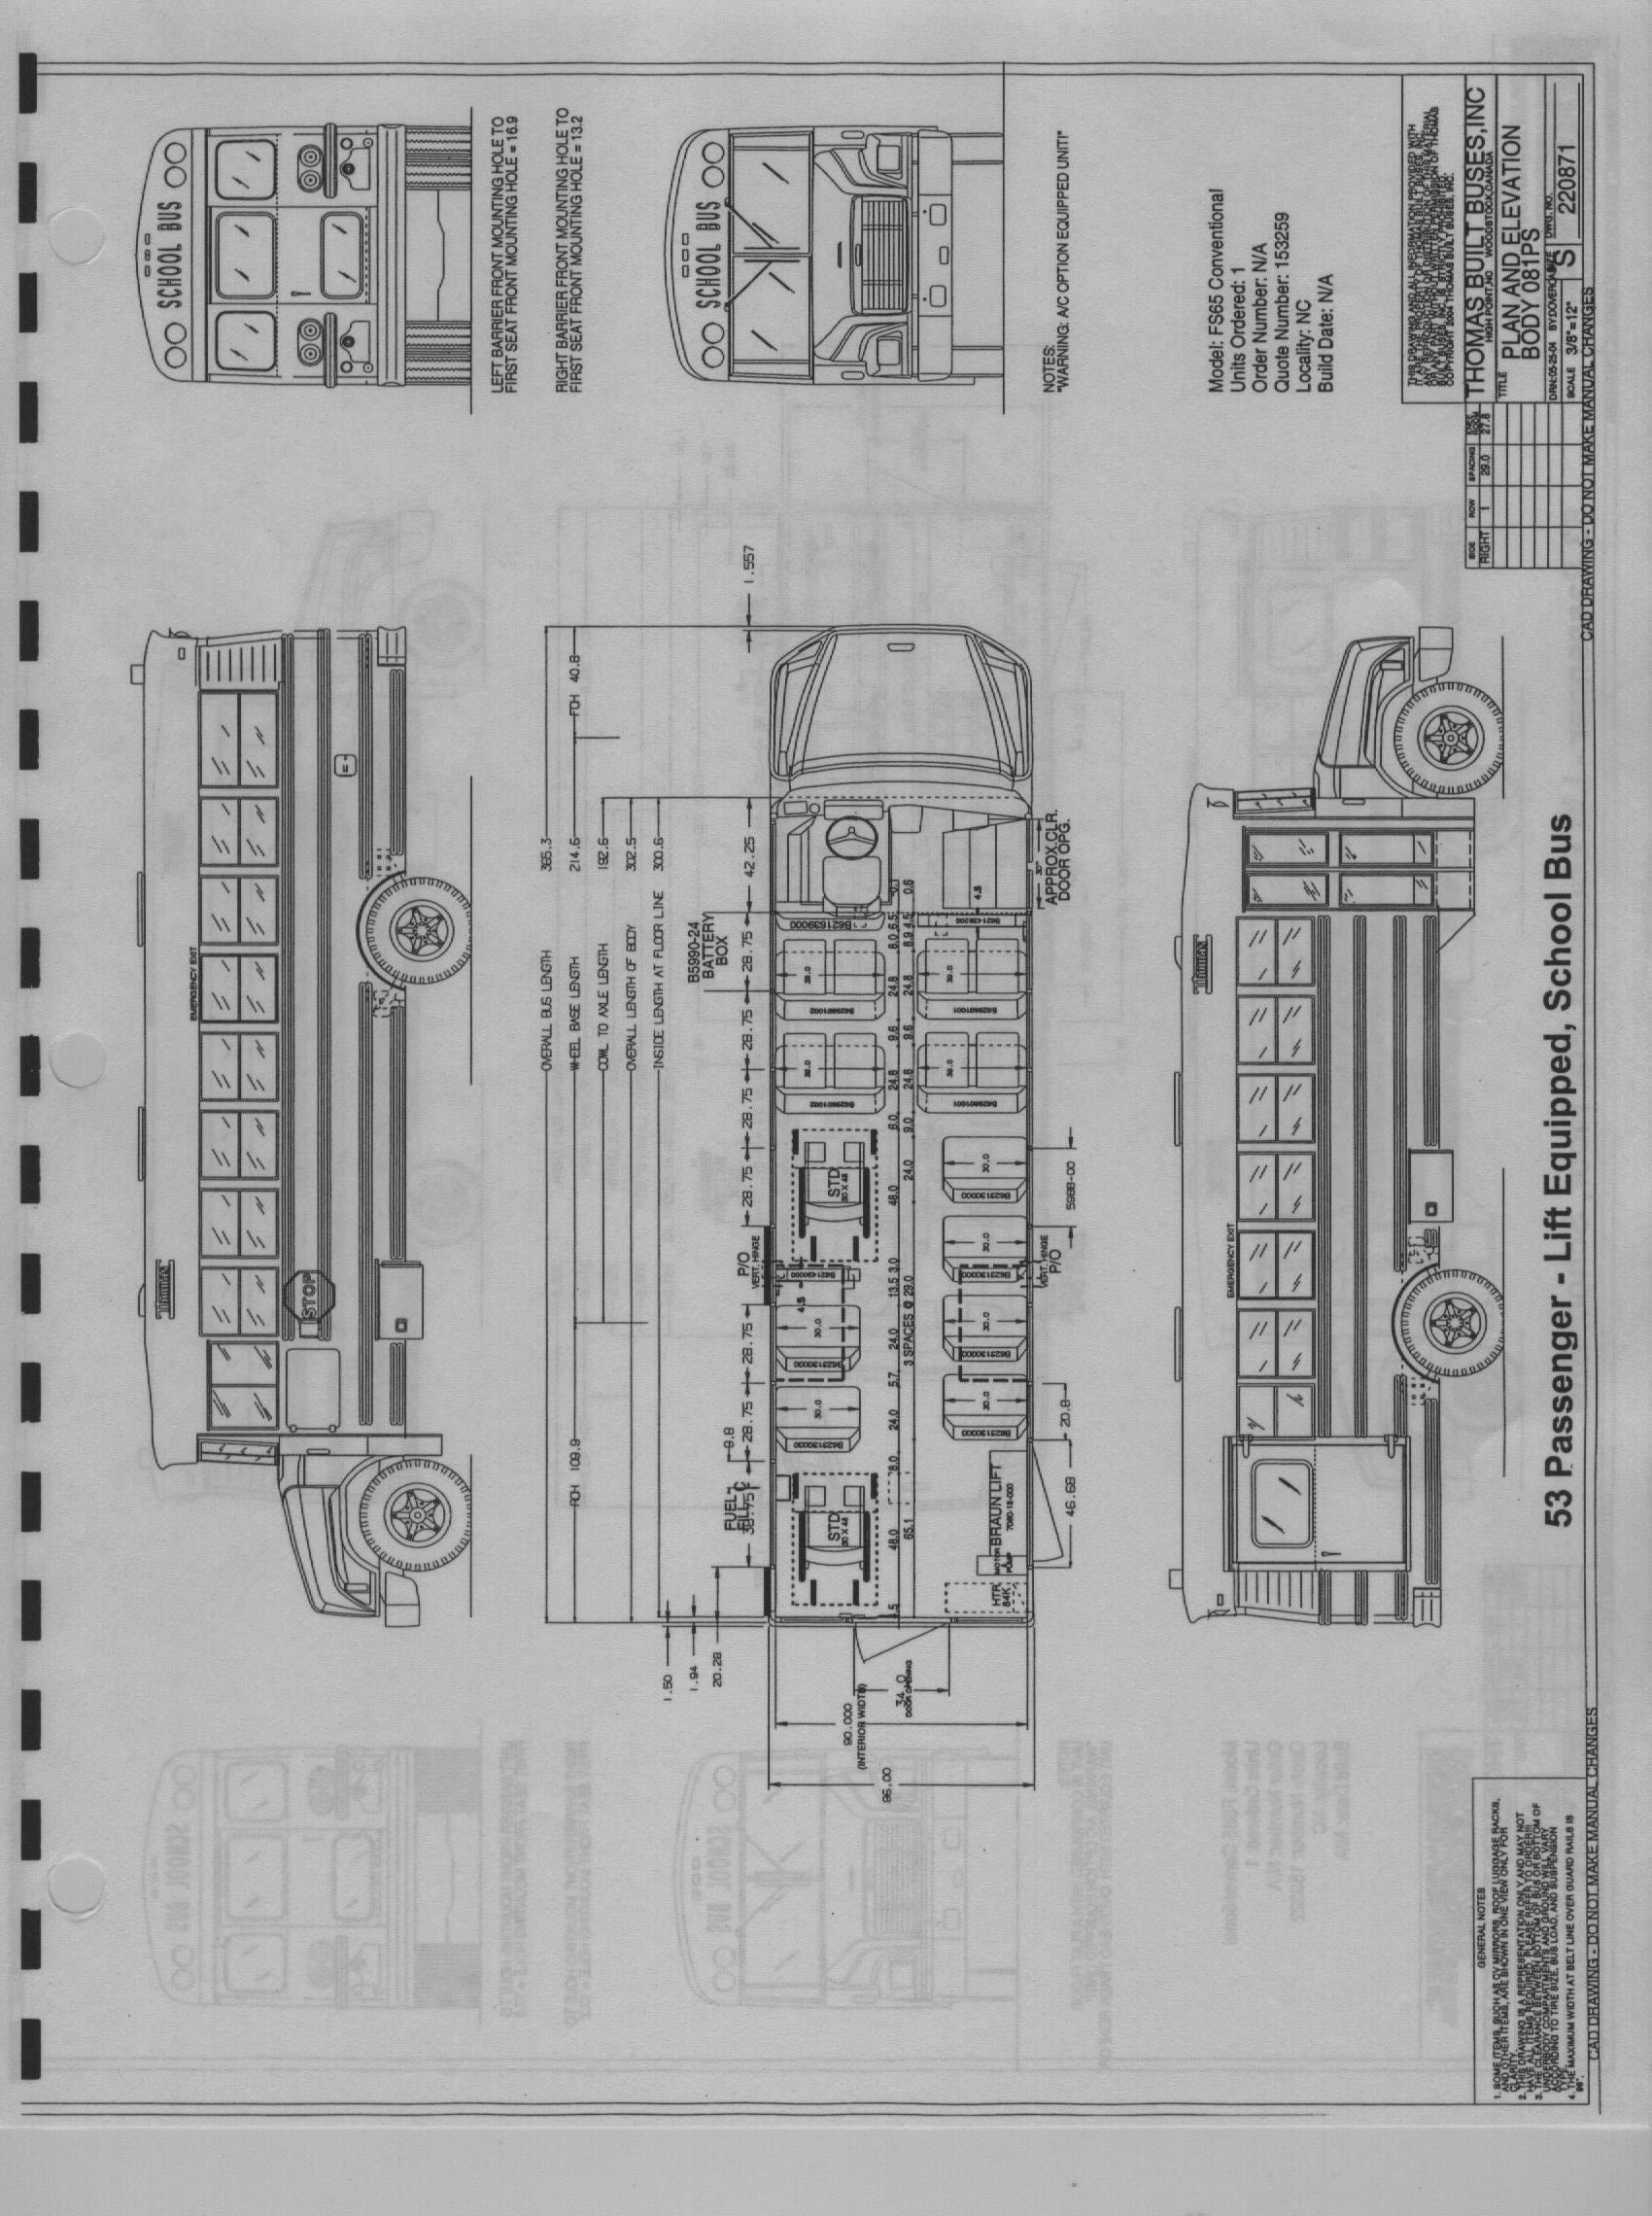 school bus parts diagram 2 pickups volumes wiring thomas buses schematics free engine image for